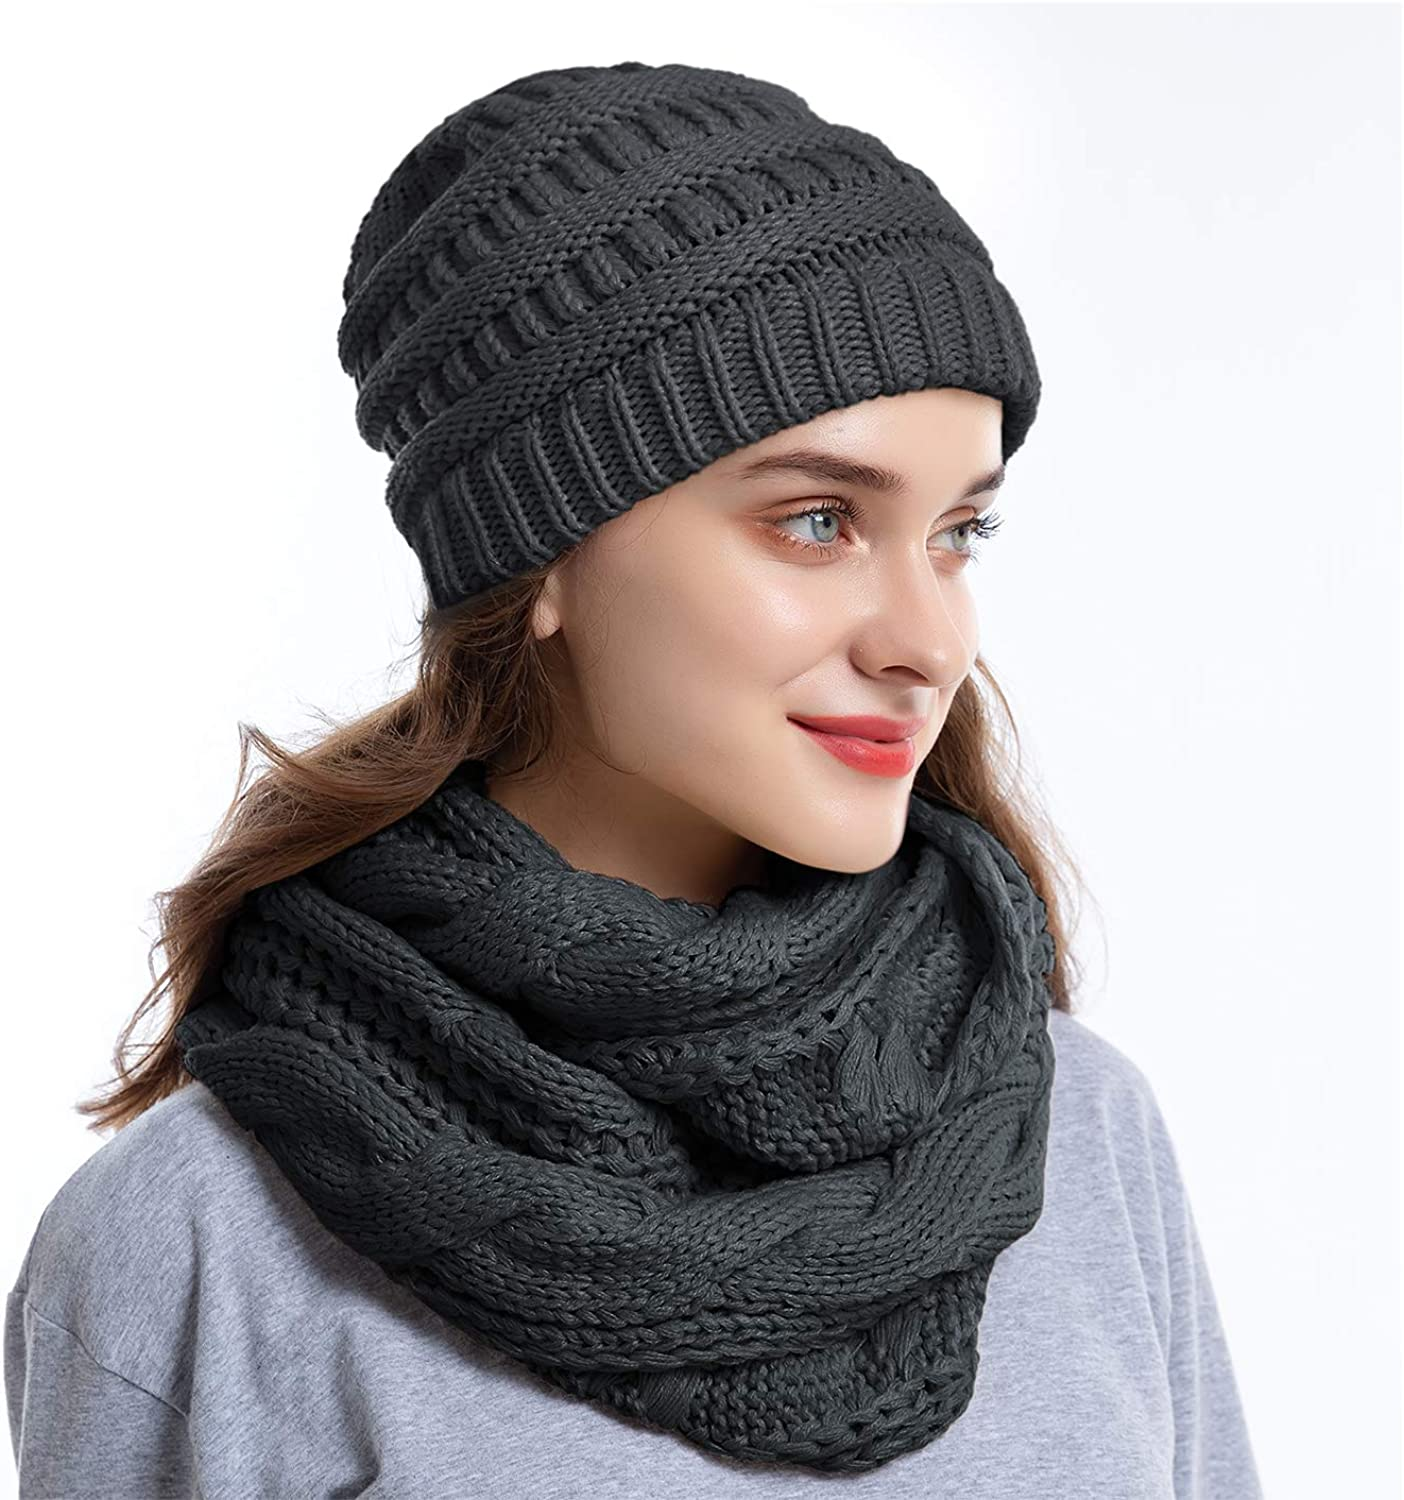 Knit Infinity Scarf Slouchy Beanie Hat Set Women Winter Warm Circle Loop Scarfs